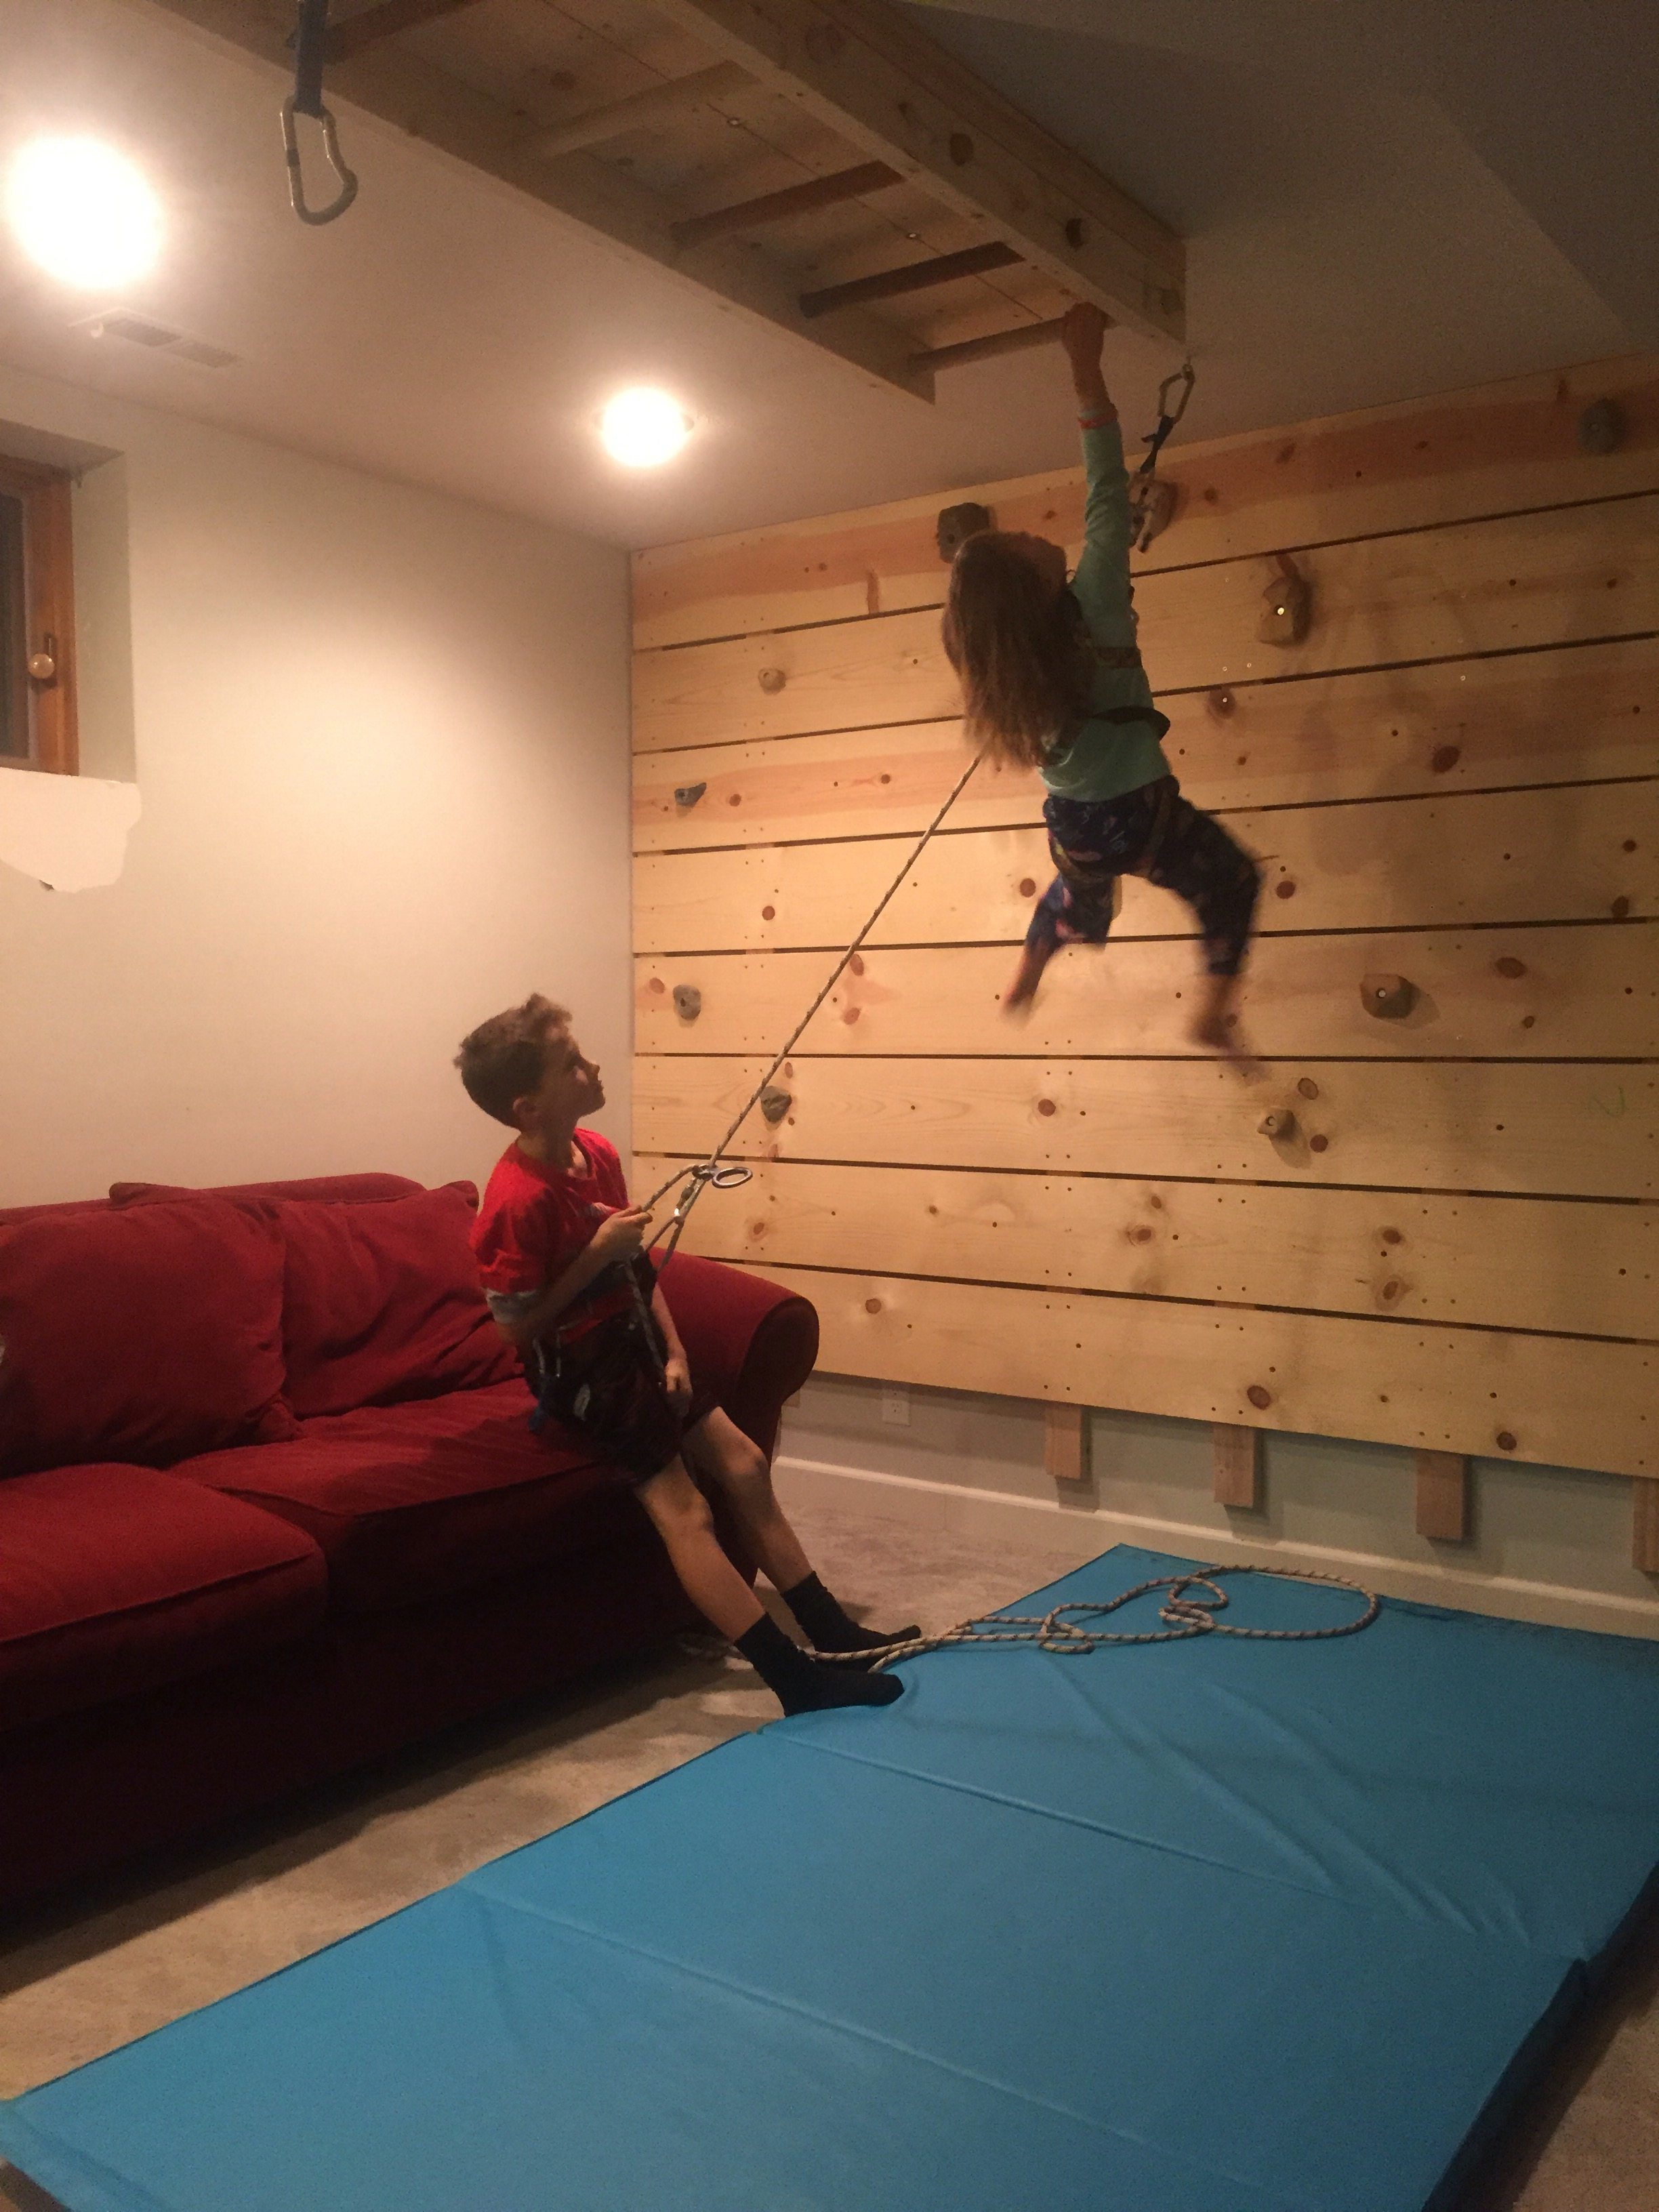 DIY Basement Rock Climbing Wall: On Belay! – Dad vs Wild